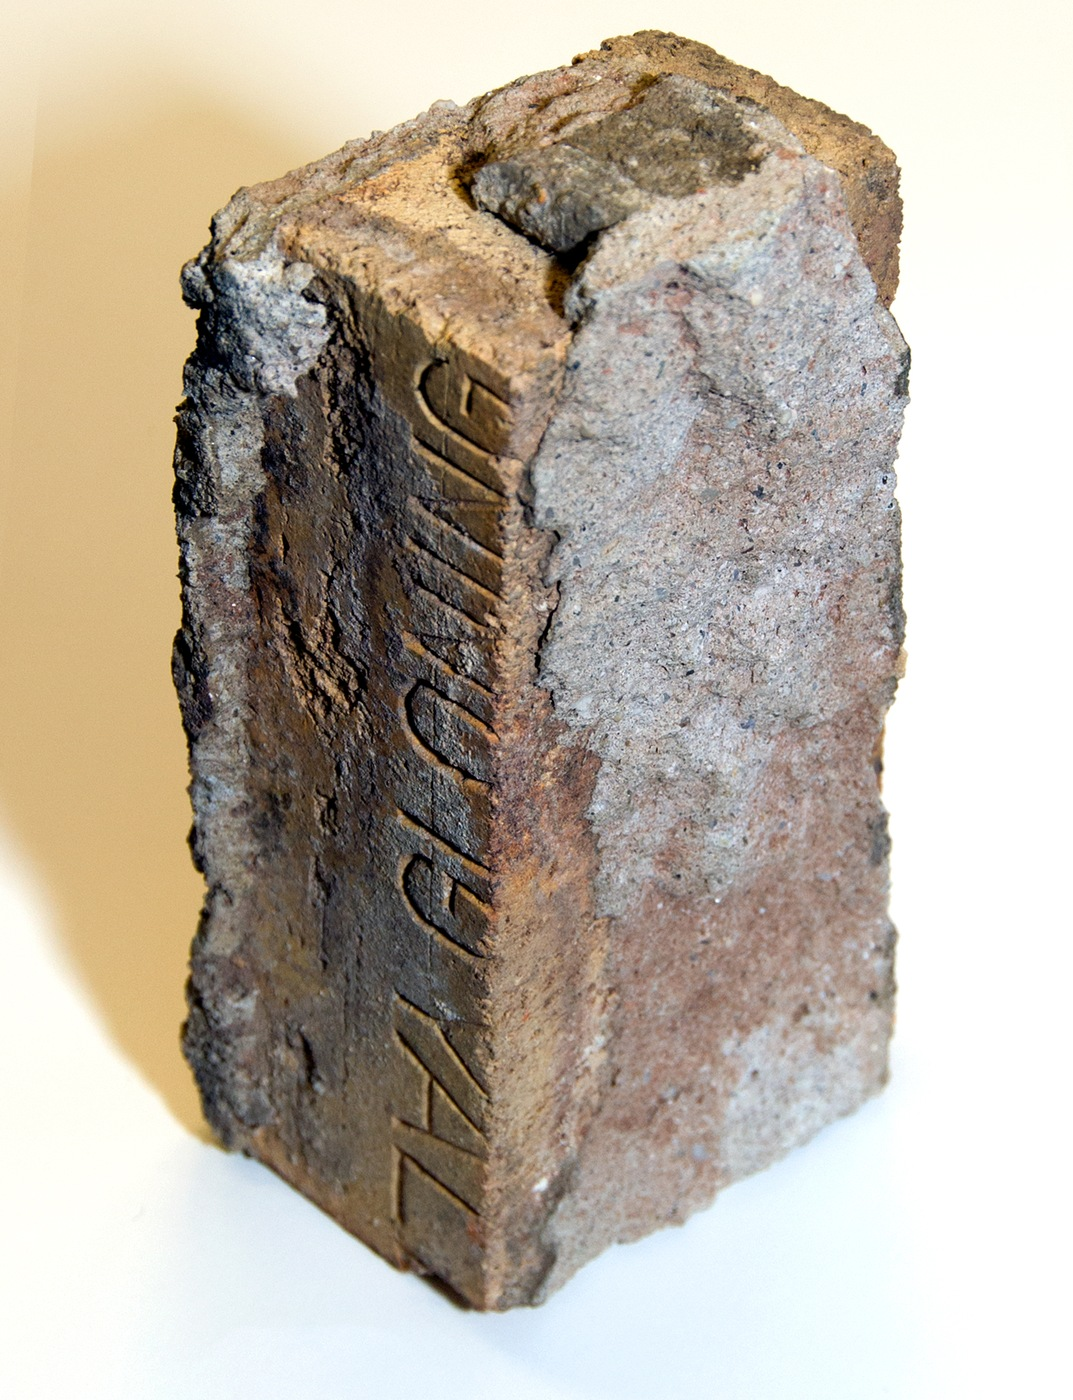 Photo of a brick from the scene of mobster Dutch Schultz's murder in 1935.